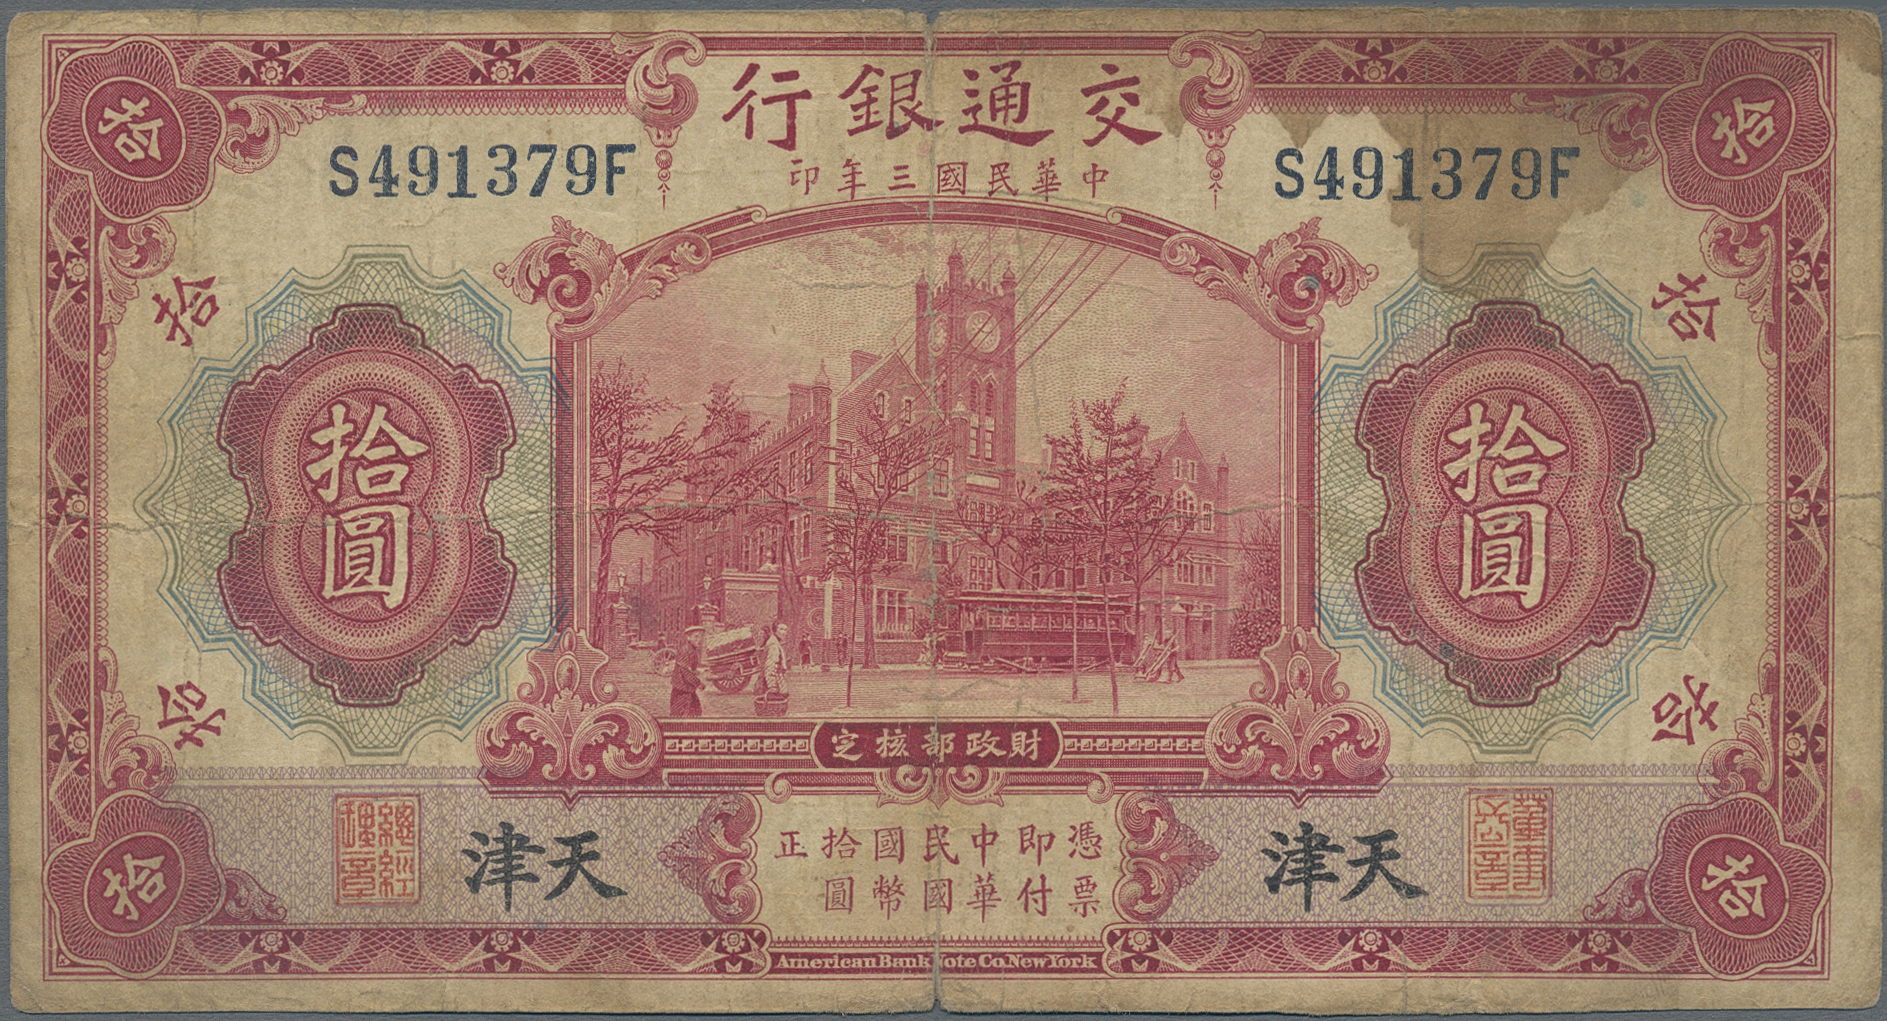 Lot 00139 - China | Banknoten  -  Auktionshaus Christoph Gärtner GmbH & Co. KG Sale #48 The Banknotes